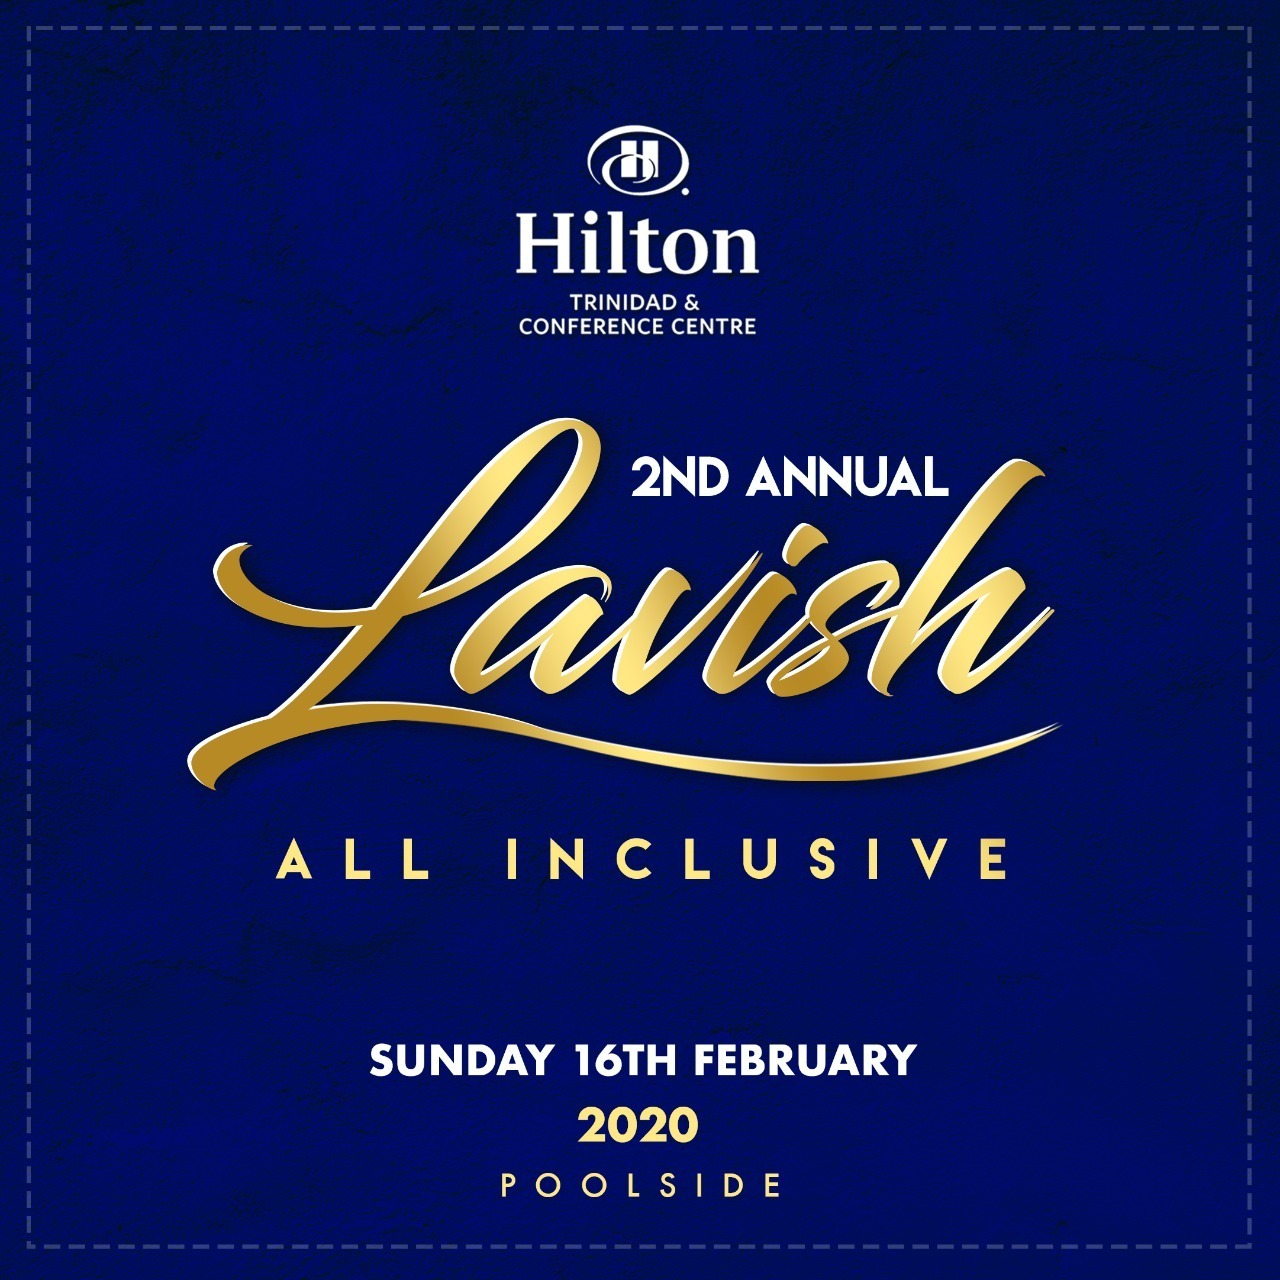 Lavish - 2nd annual All Inclsuive